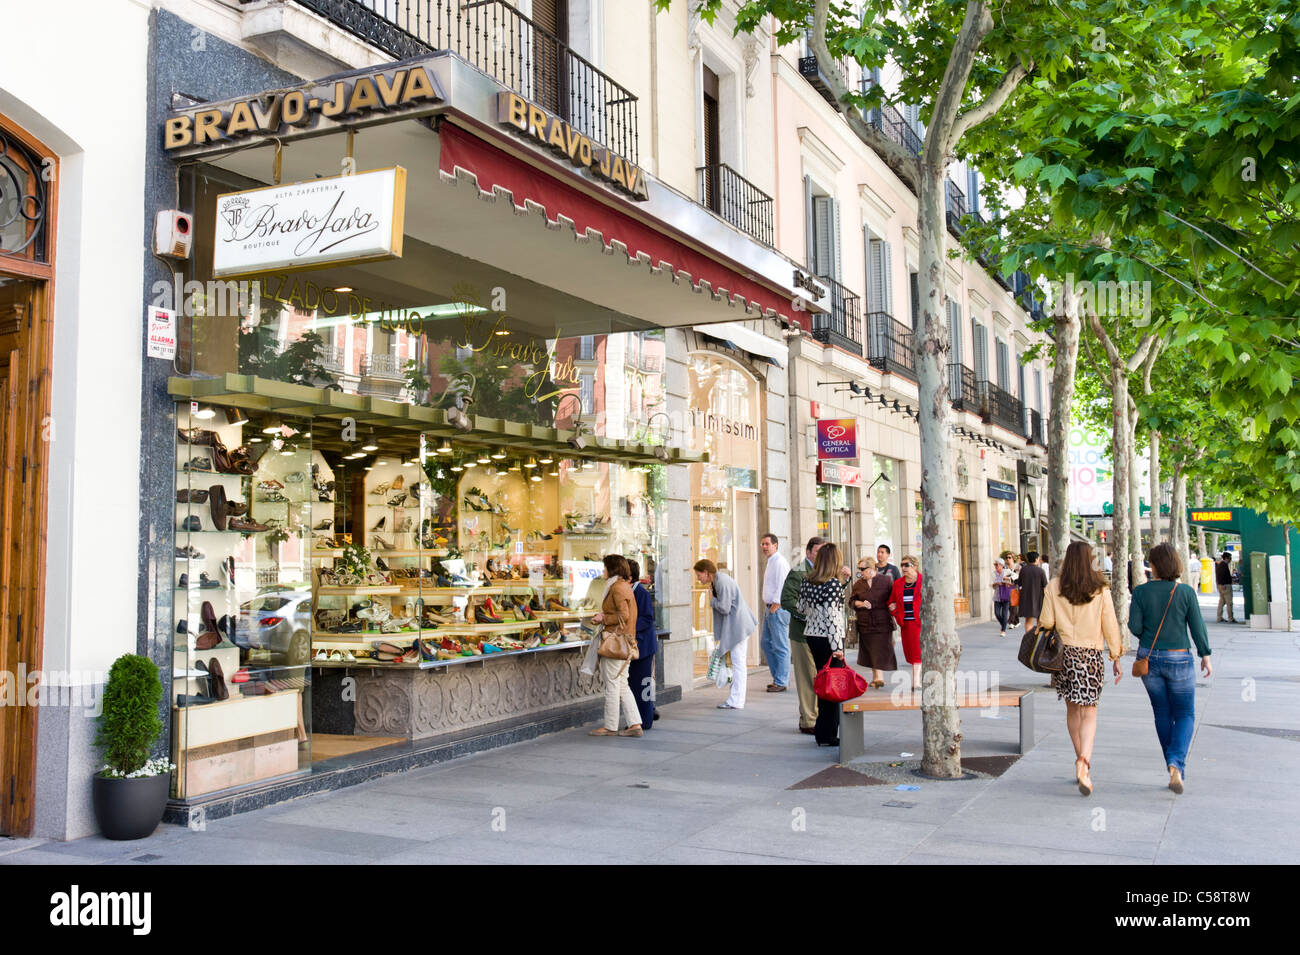 Shopping on Calle de Serrano in the Salamanca district, Madrid, Spain - Stock Image